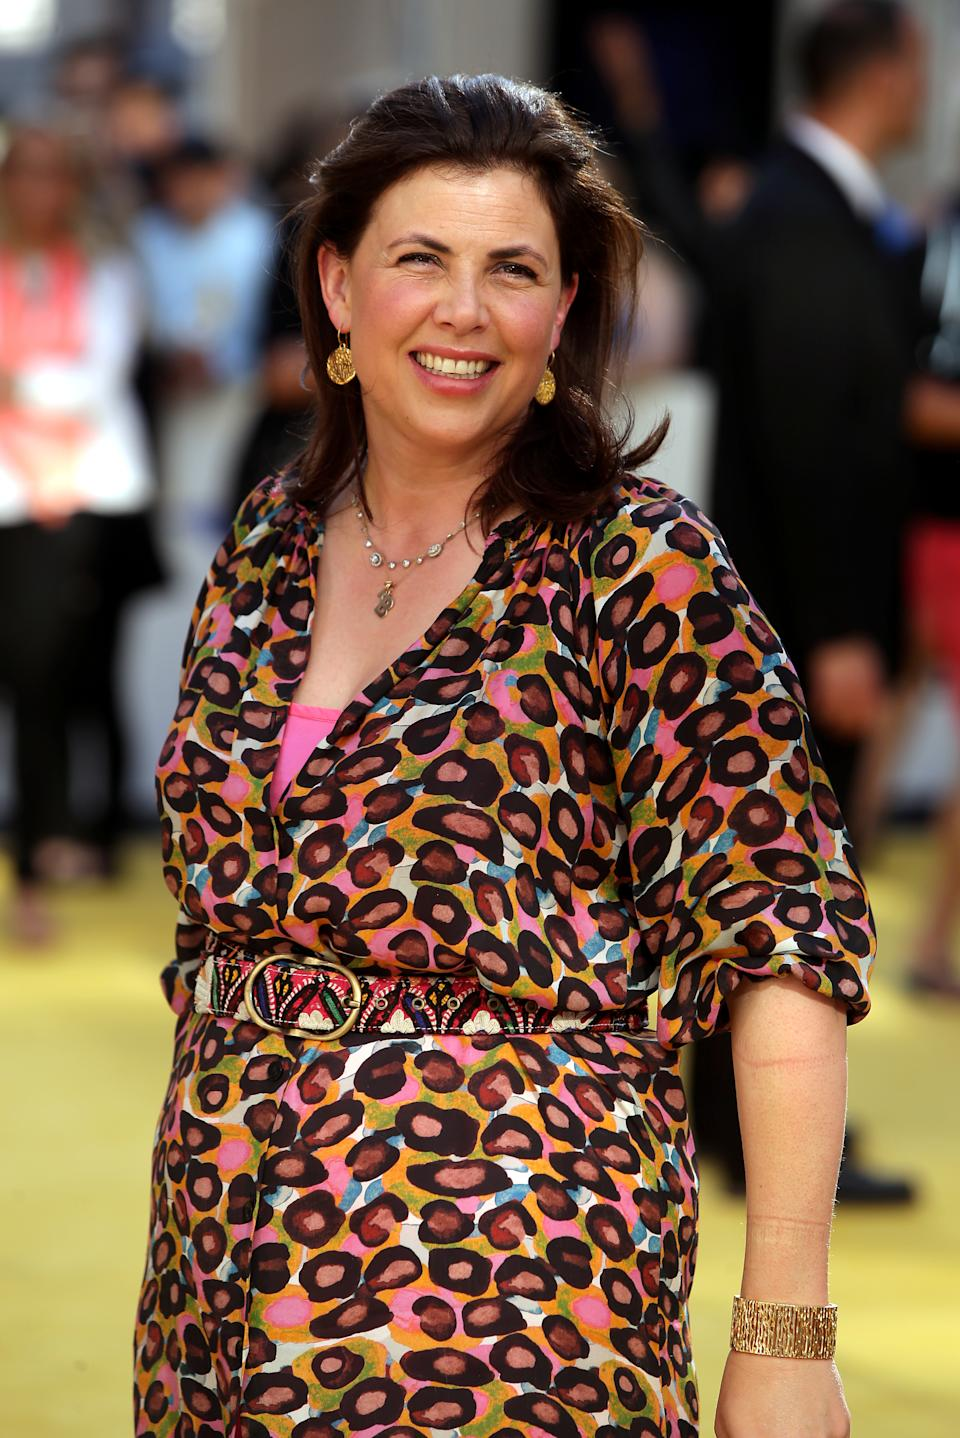 Kirstie Allsopp attending the world premiere of Minions at the Odeon Leicester Square, London. PRESS ASSOCIATION Photo. Picture date: Thursday June 11, 2015. Photo credit should read: Daniel Leal-Olivas/PA Wire